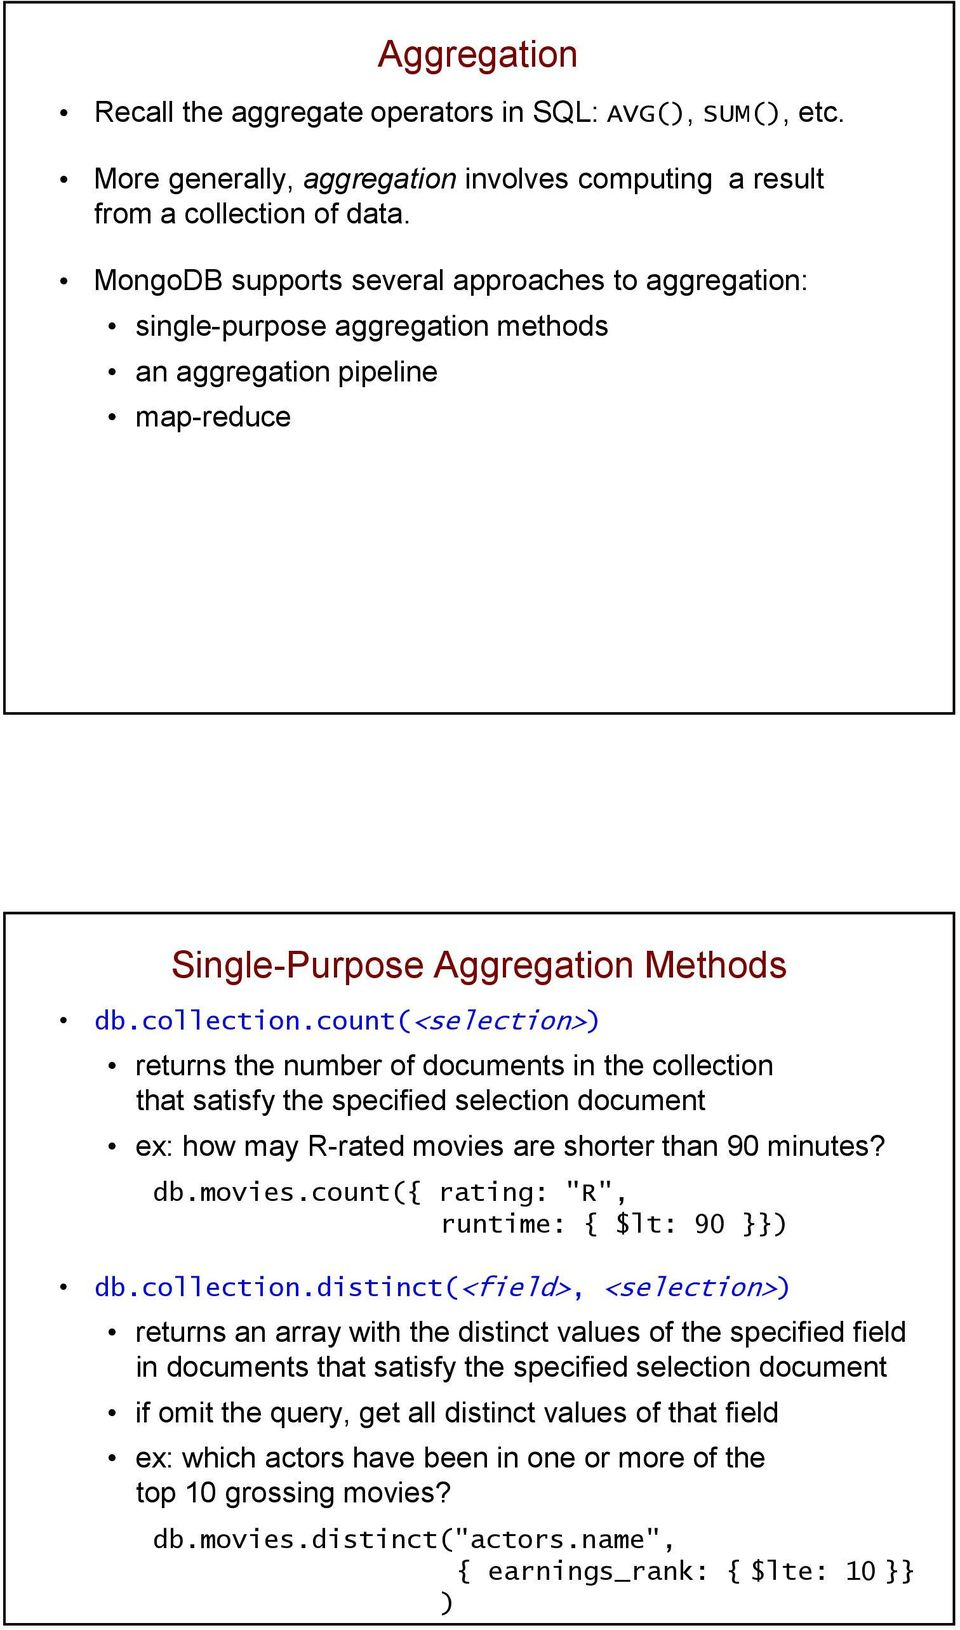 NoSQL Databases, part II - PDF